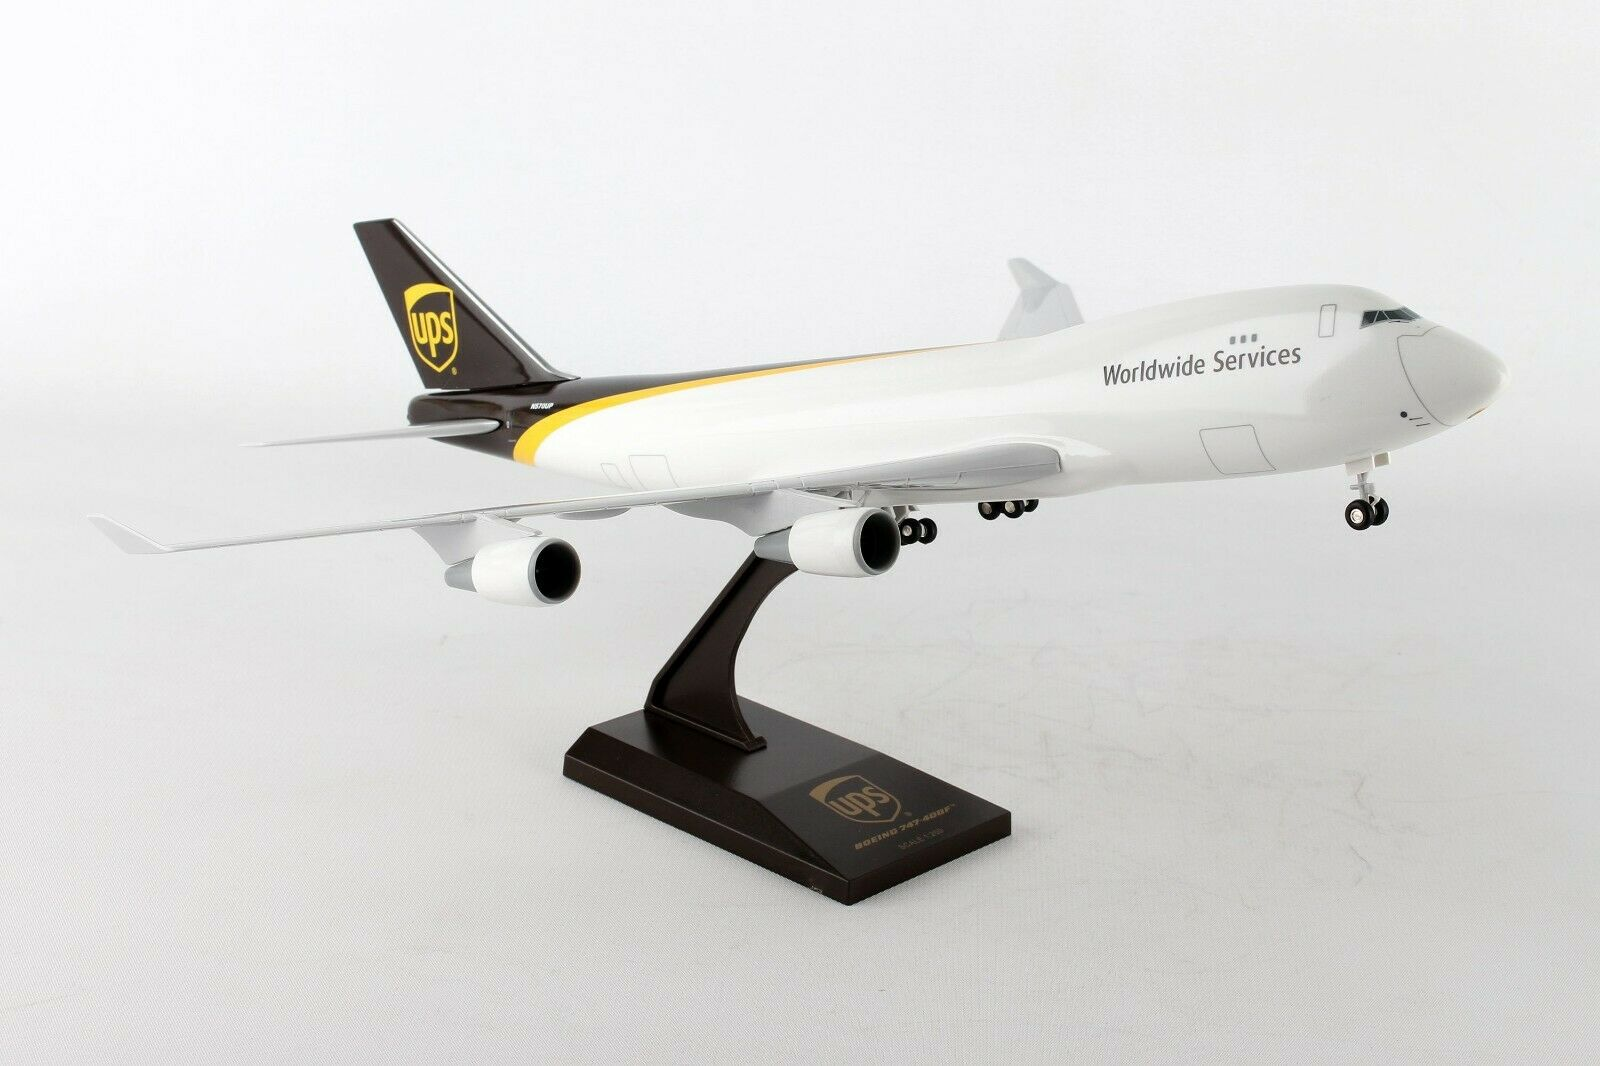 Skymarks UPS Boeing Boeing Boeing 747-400F 1 200 Scale Model  with Stand and Gears N570UP e11182